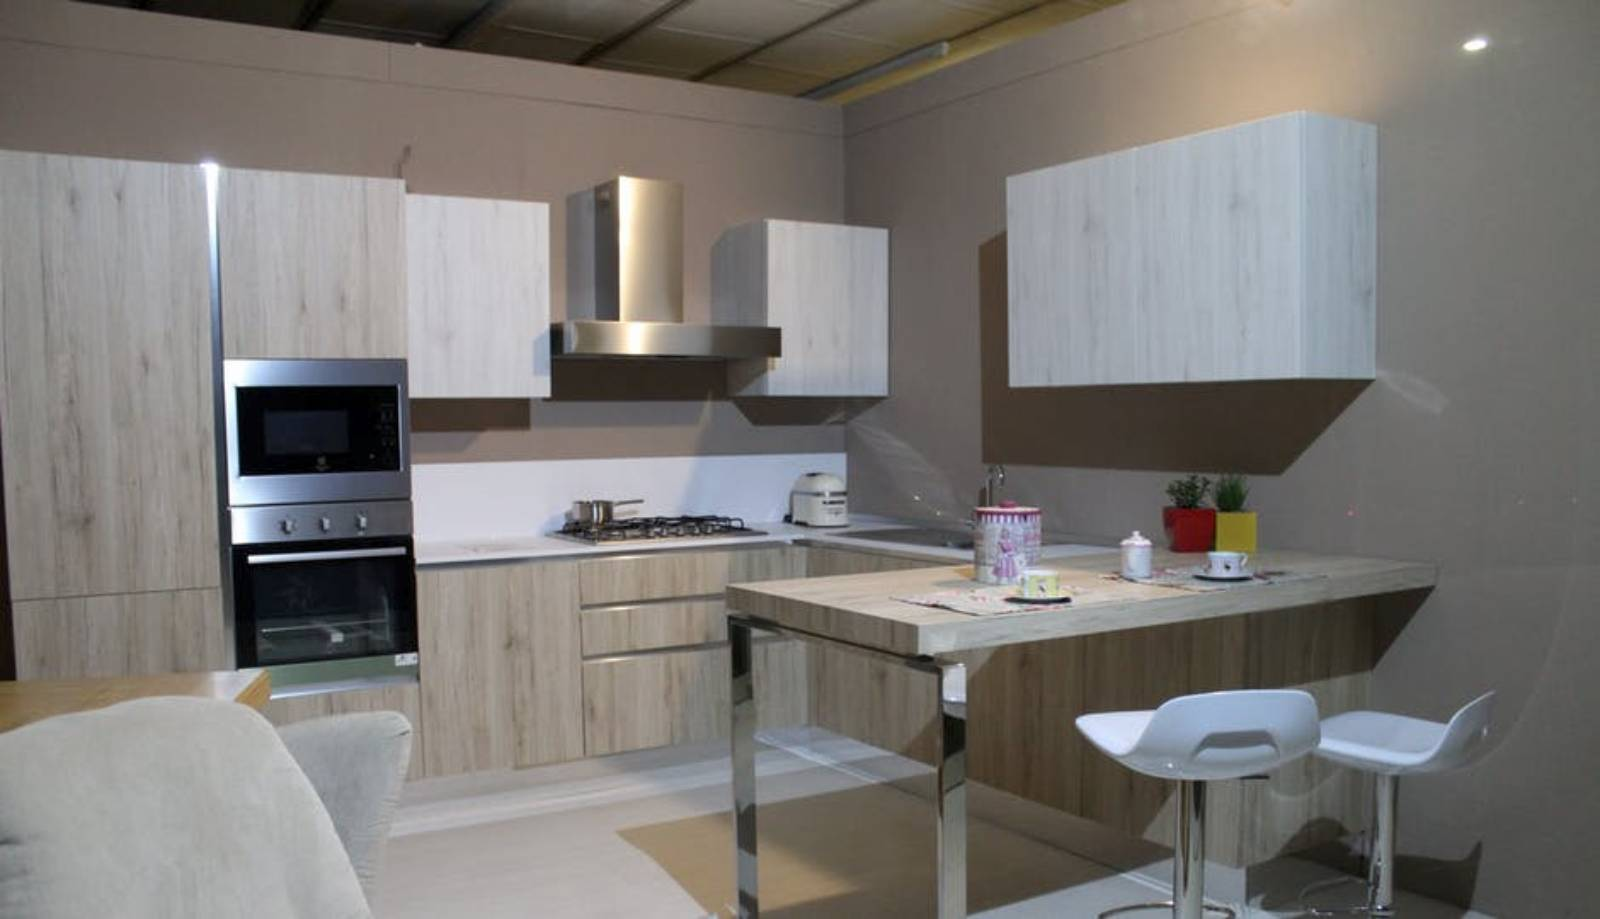 Kitchen As Part Of House Design Considerations